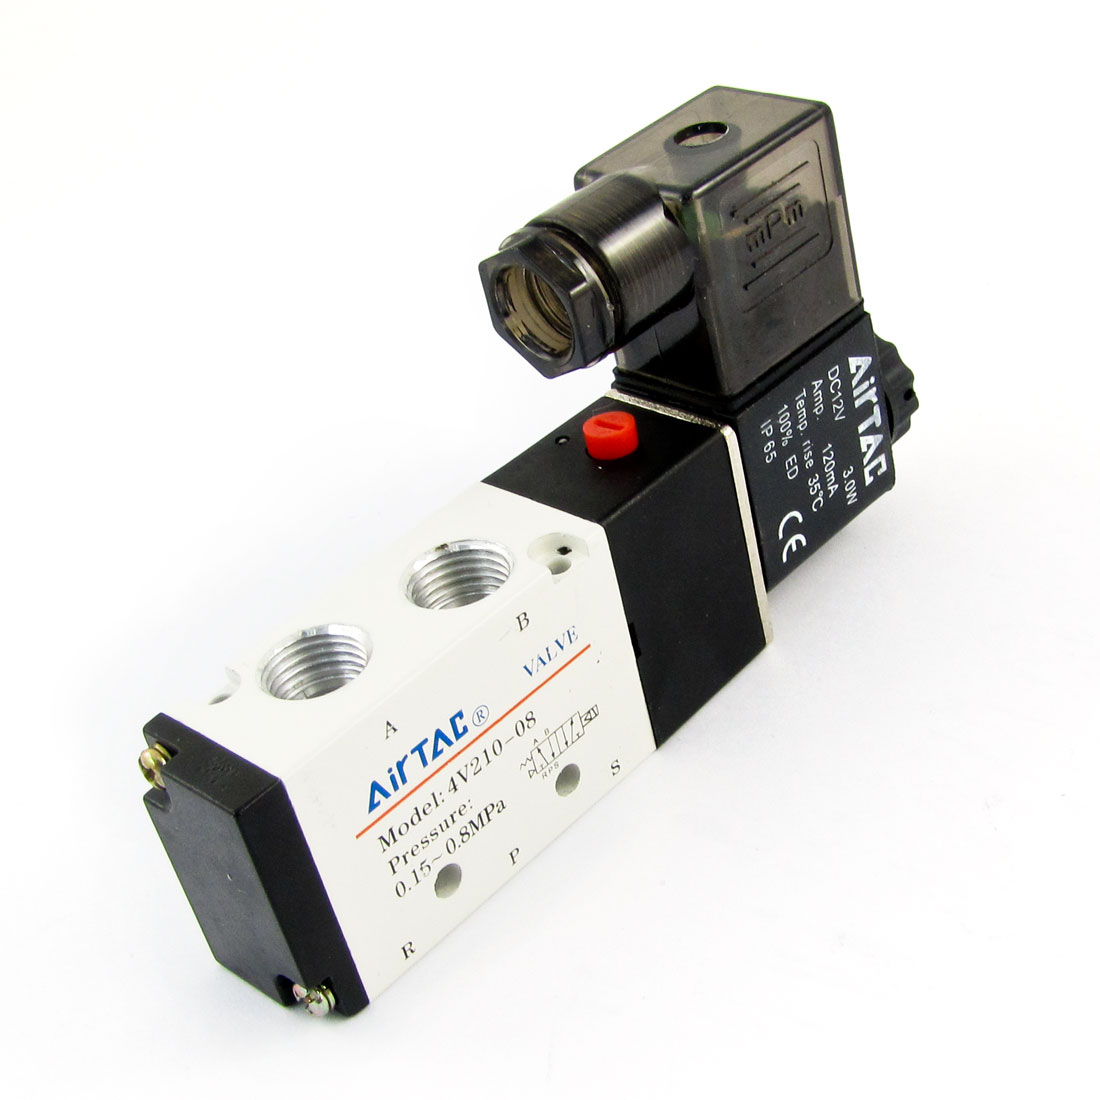 DC 12V 3.0W 120mA Inner Guide 2 Position 5 Way Air Control Solenoid Valve